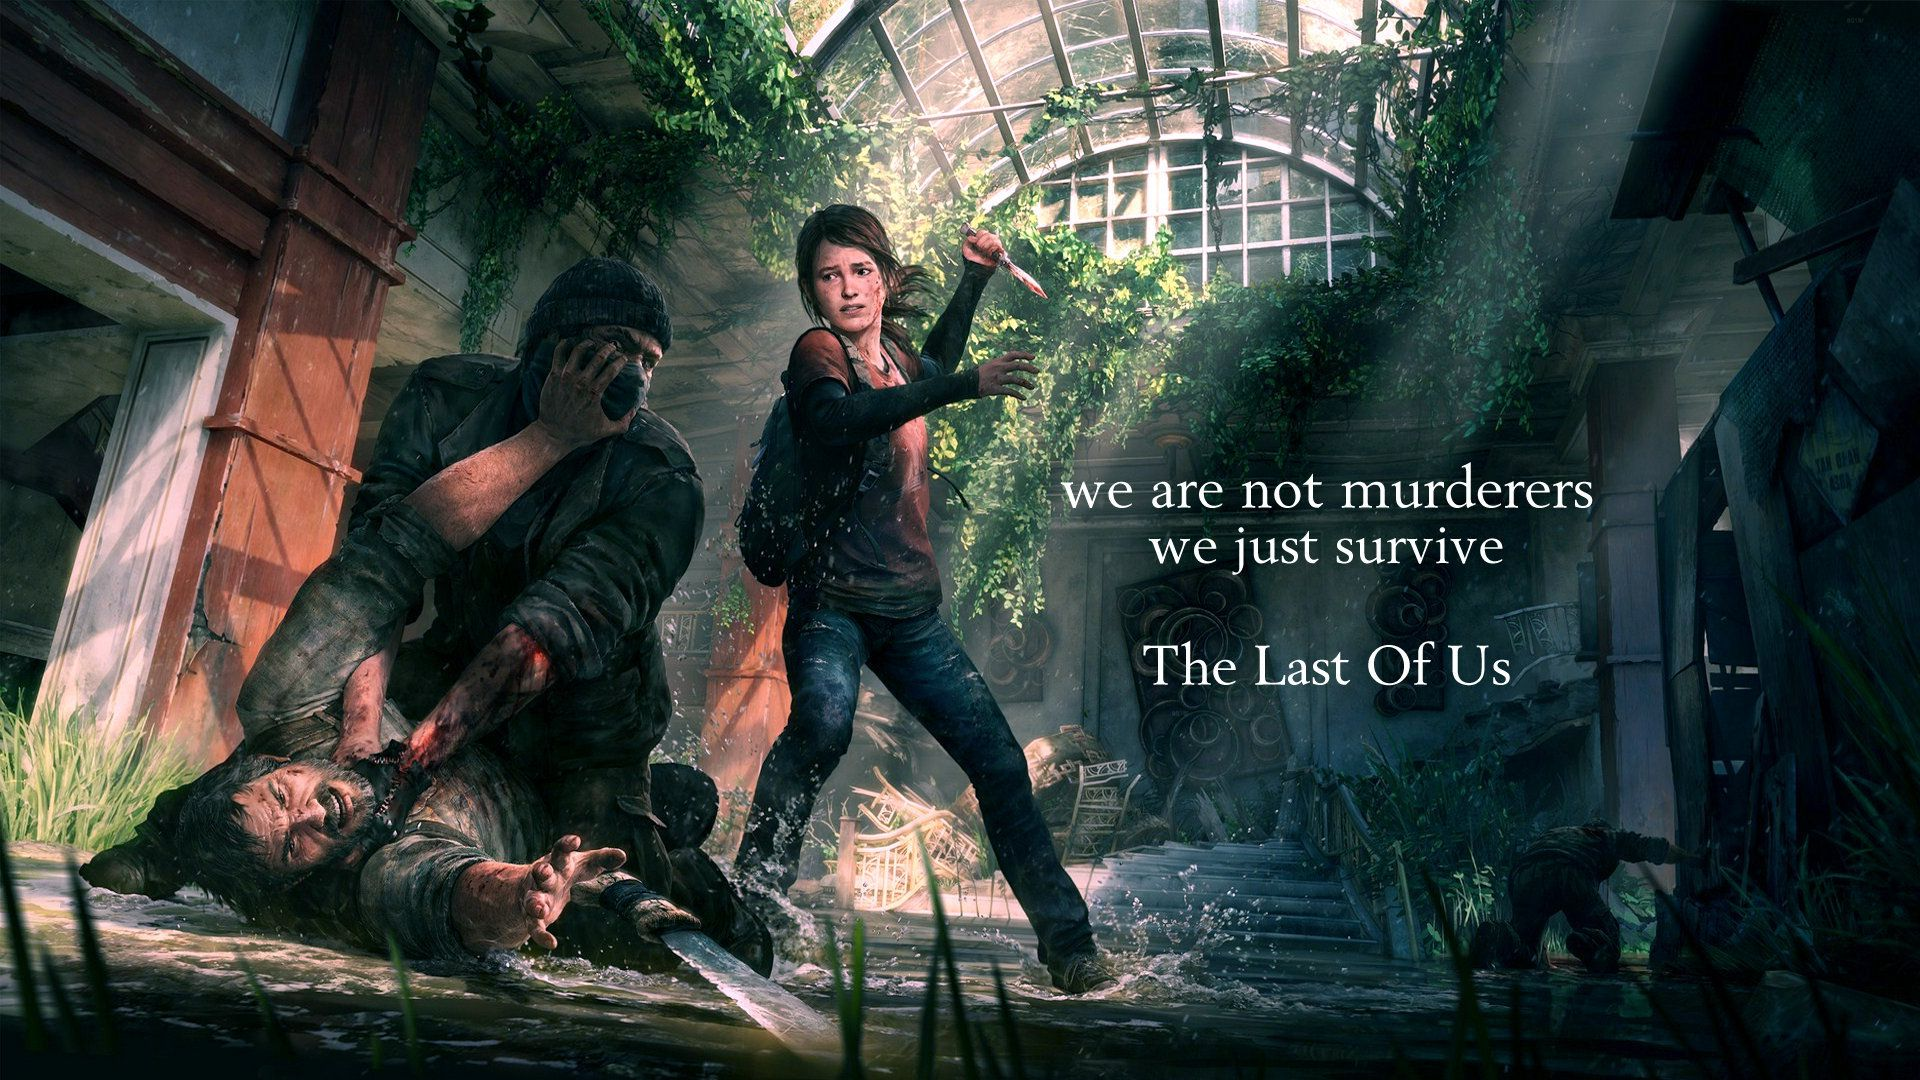 The Last Of Us Wallpaper Hd The Last Of Us Last Of Us Remastered Beyond Two Souls